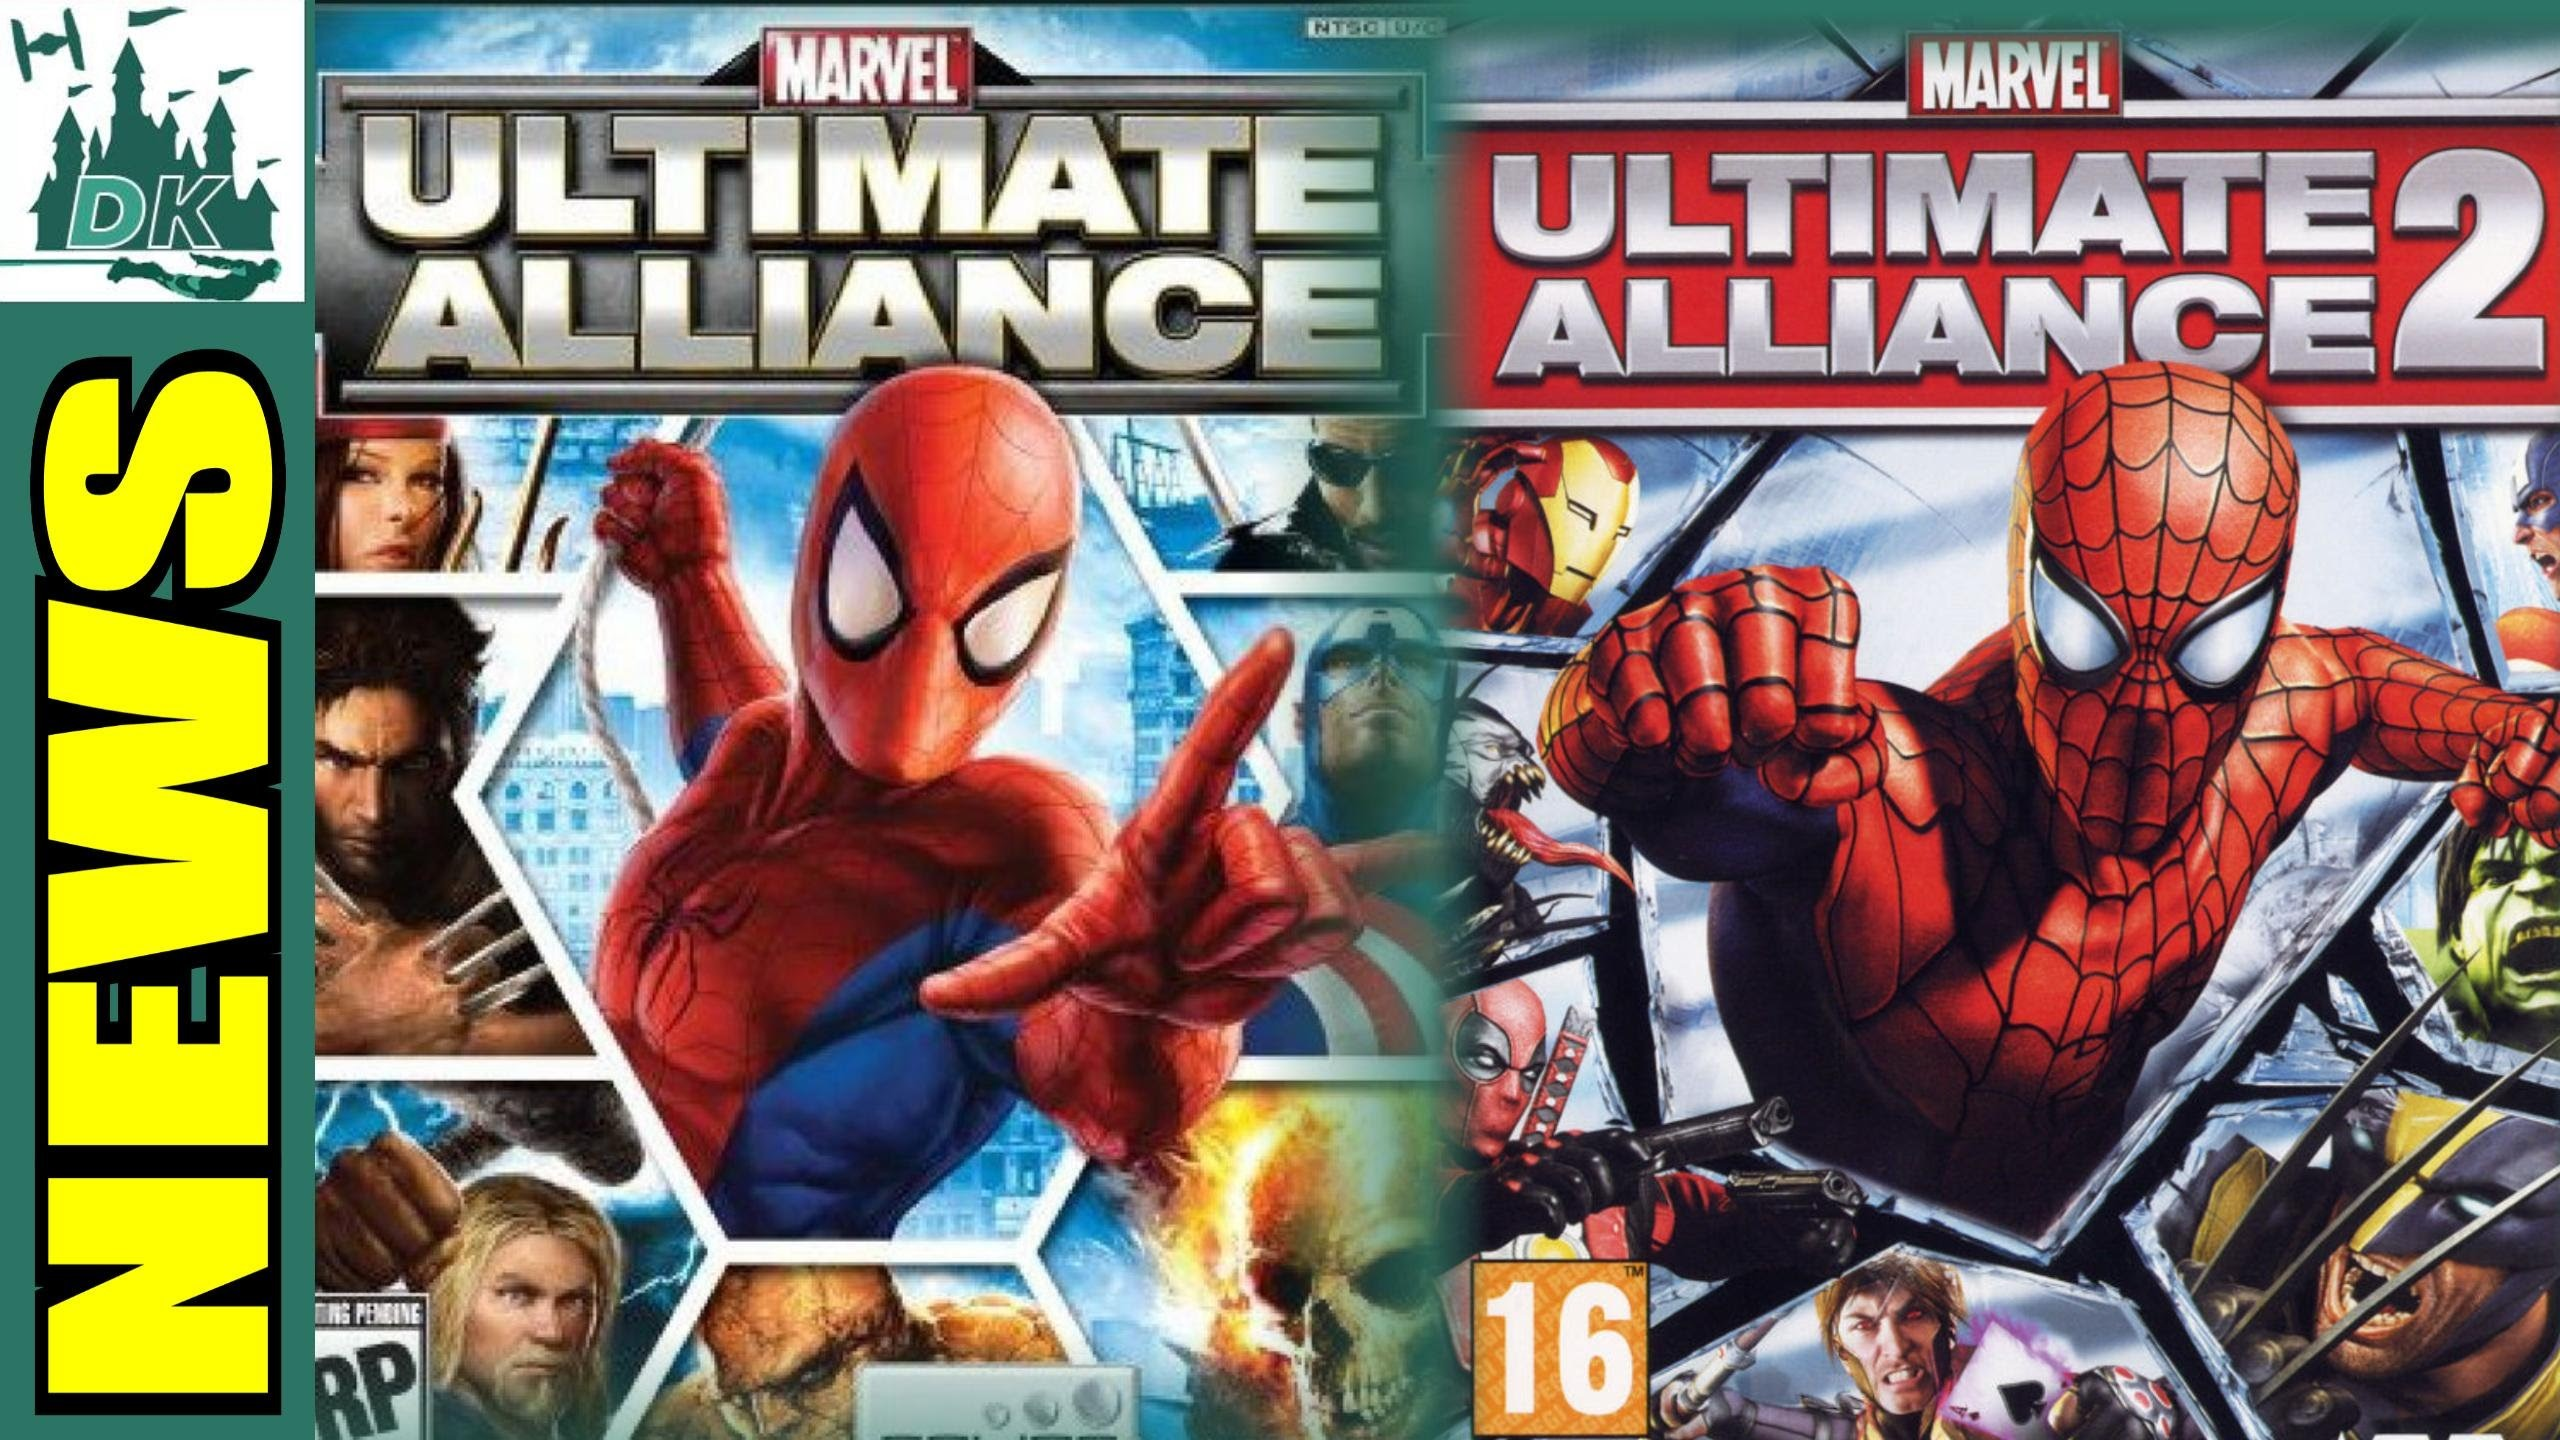 Marvel Ultimate Alliance 2 Wallpaper (73+ images)